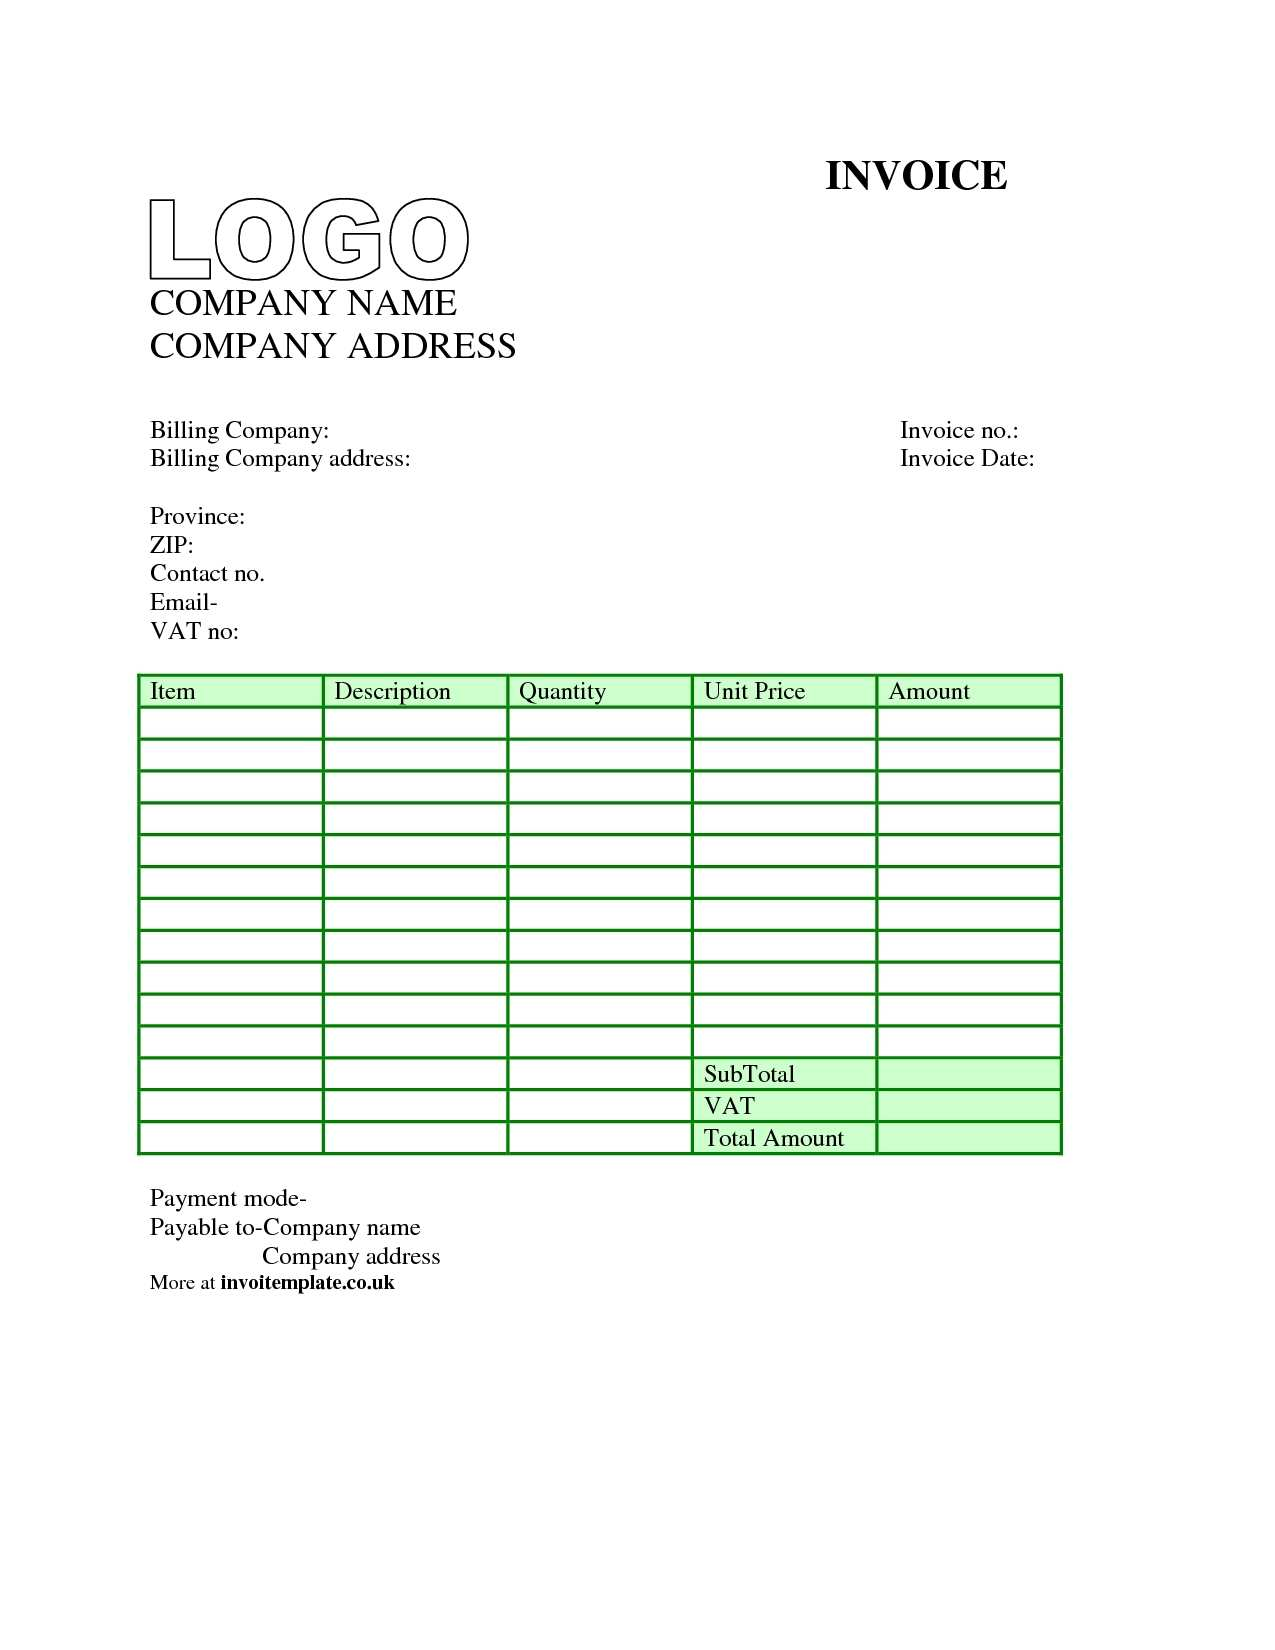 85 Standard Blank Invoice Template For Microsoft Excel in Photoshop with Blank Invoice Template For Microsoft Excel